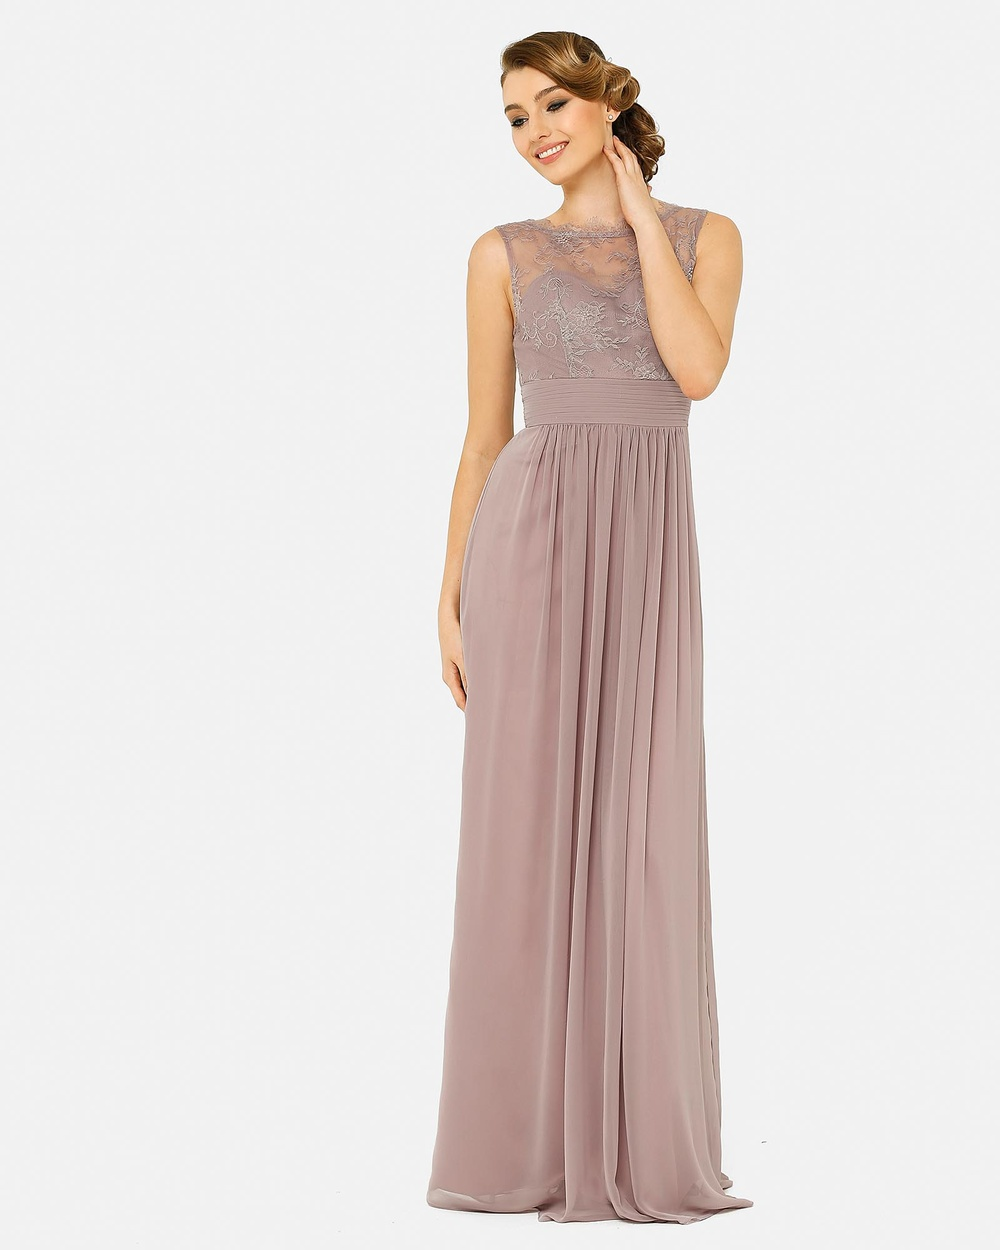 Tania Olsen Designs Charlotte Dress Bridesmaid Dresses Oyster Charlotte Dress